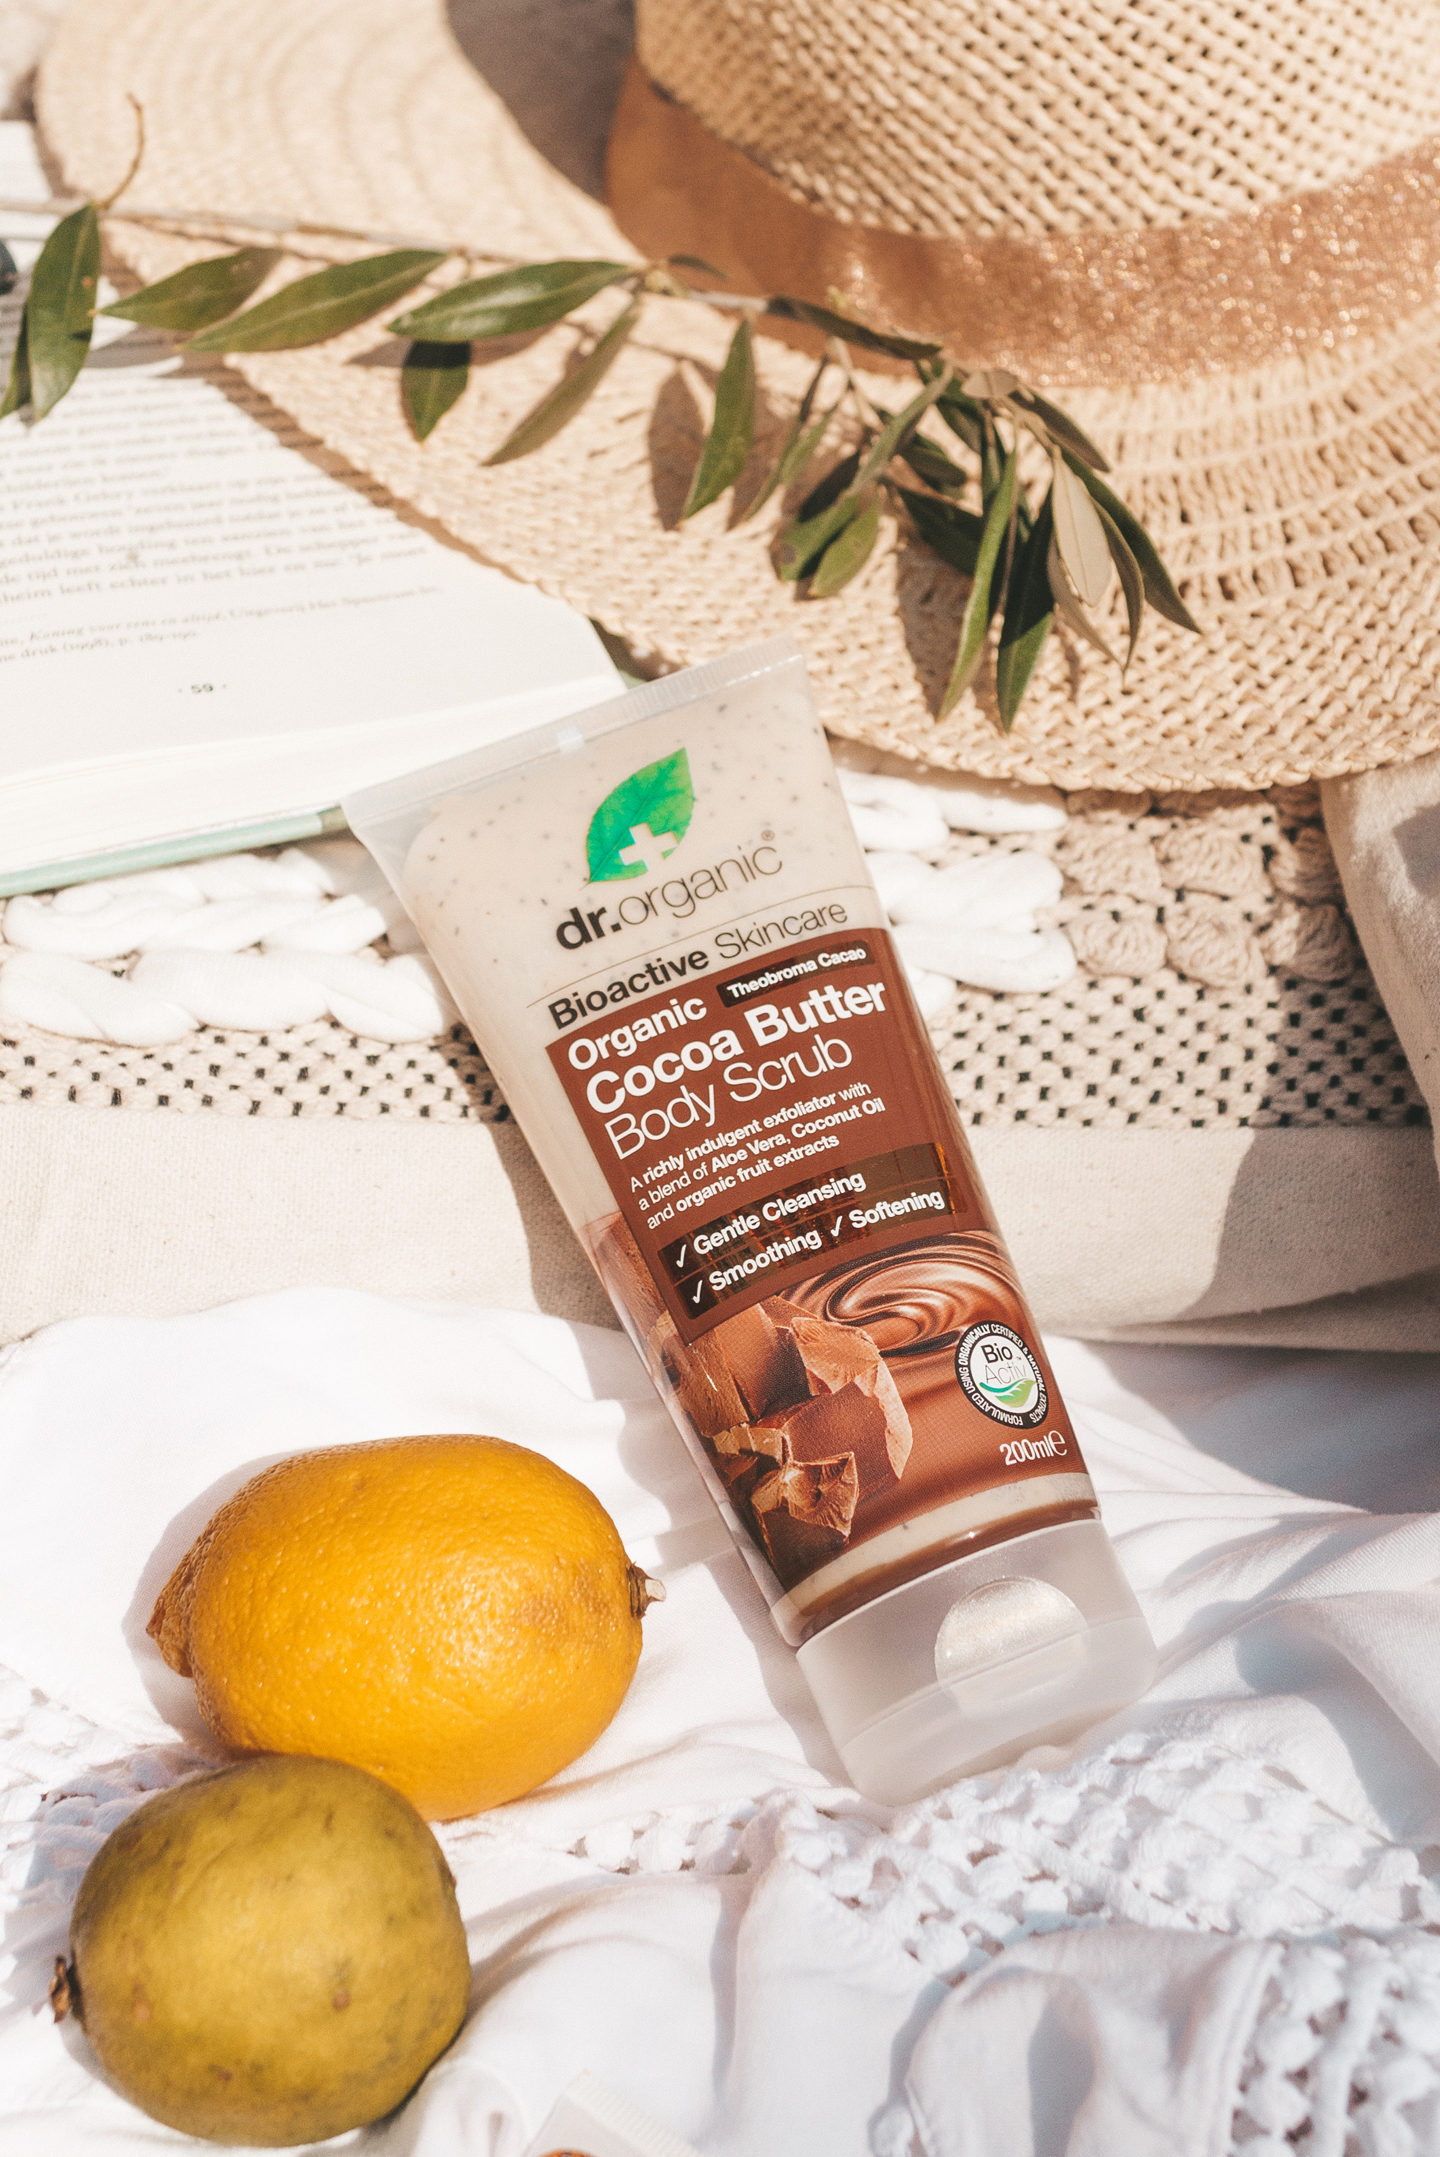 Dr. Organic Cocoa Butter vegan